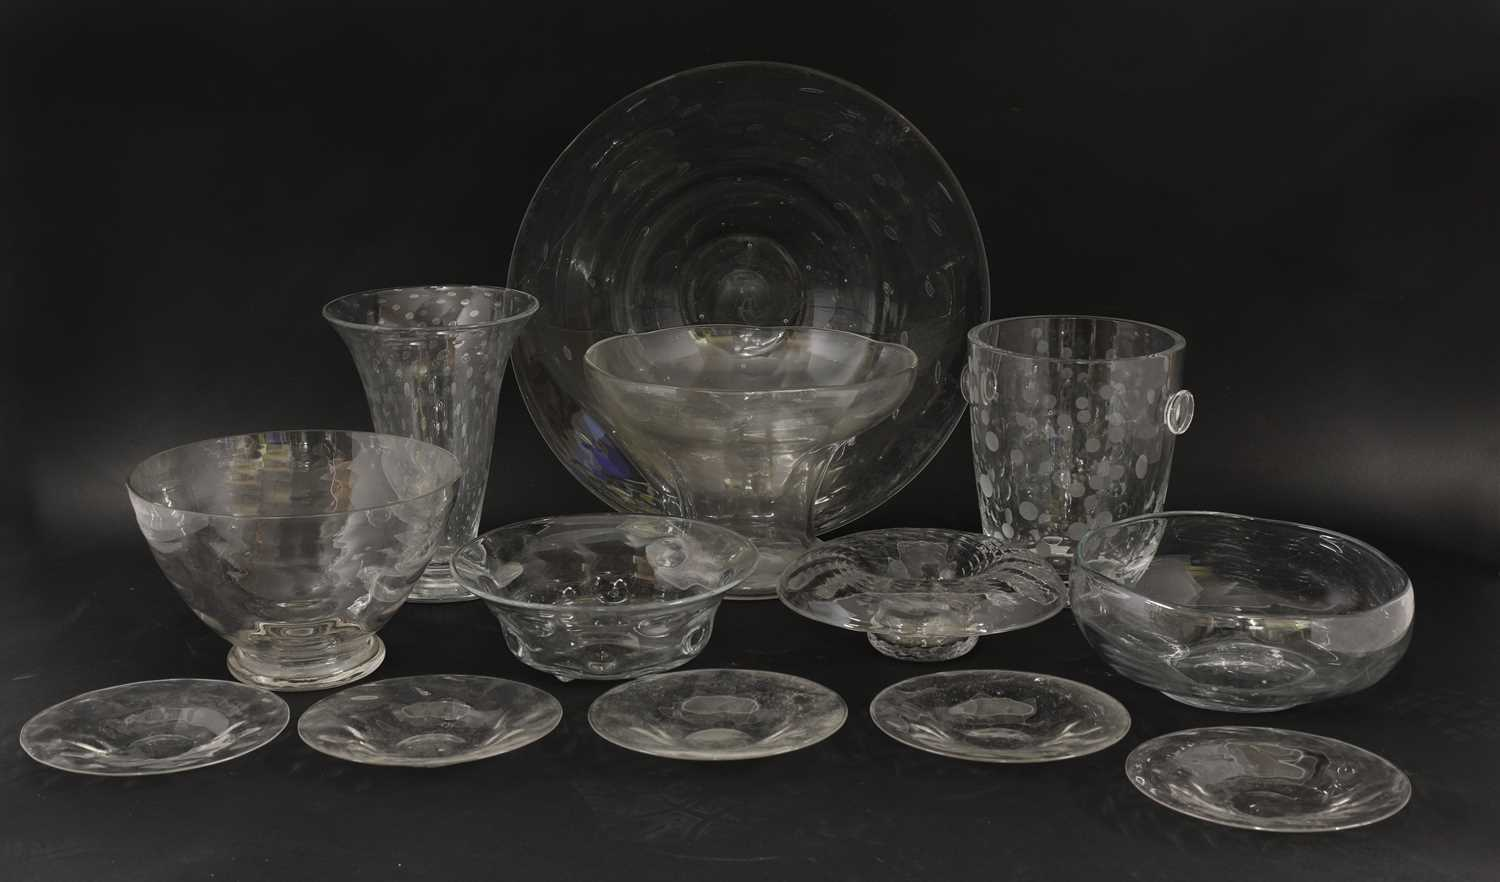 Lot 50-Plain glass - a selection of glassware